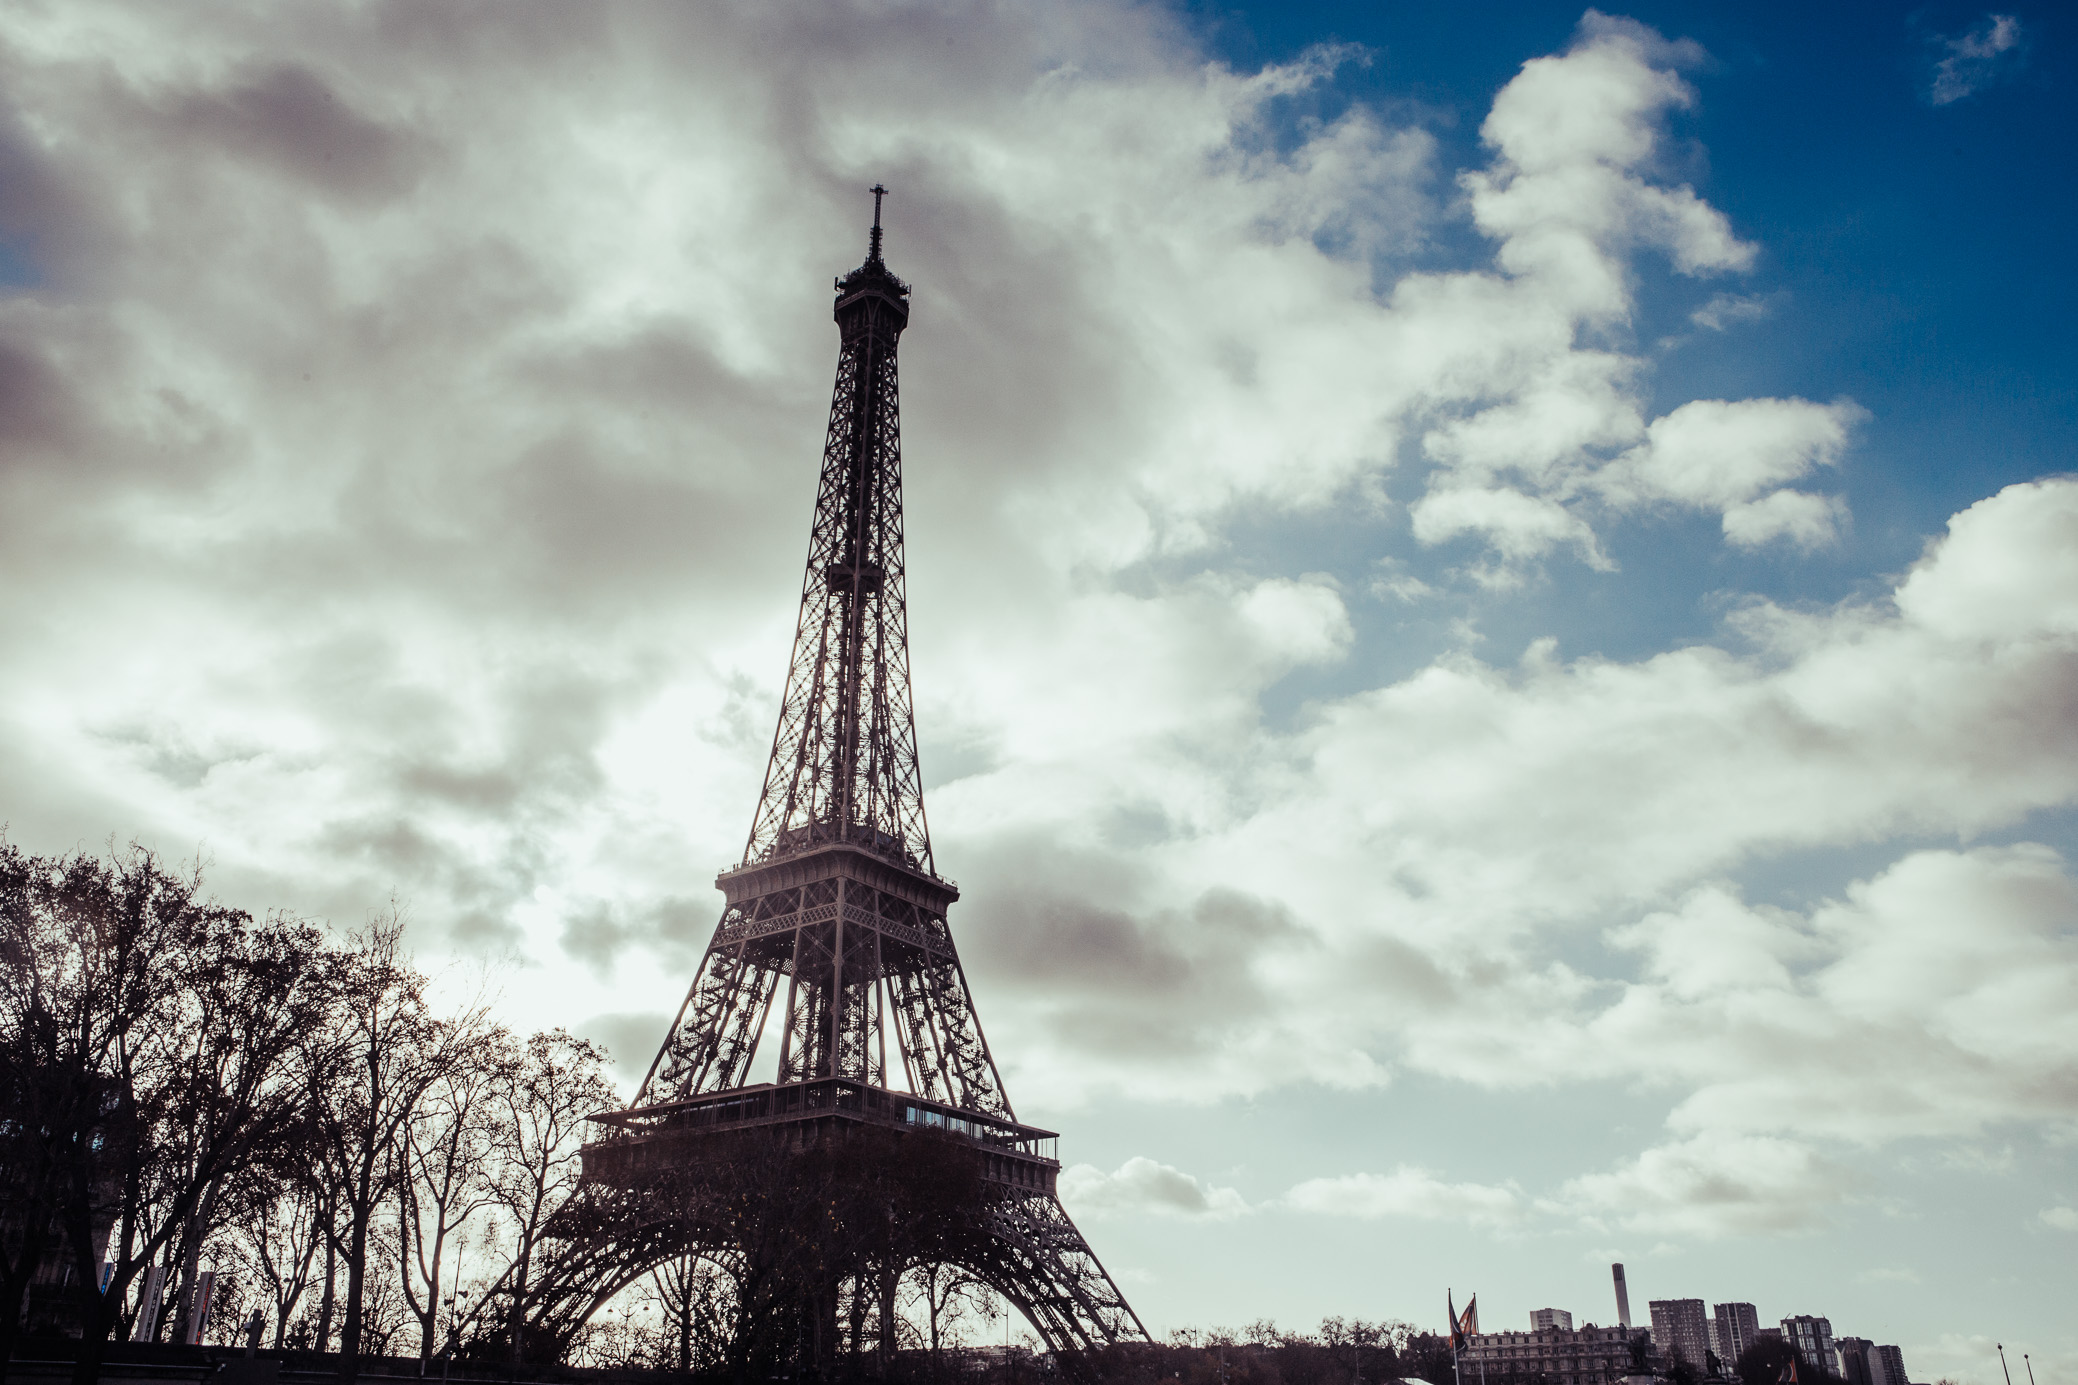 The Eiffel Tower | Paris, France | December 10th, 2018 | (Photo by David A. Smith / DSmithScenes)